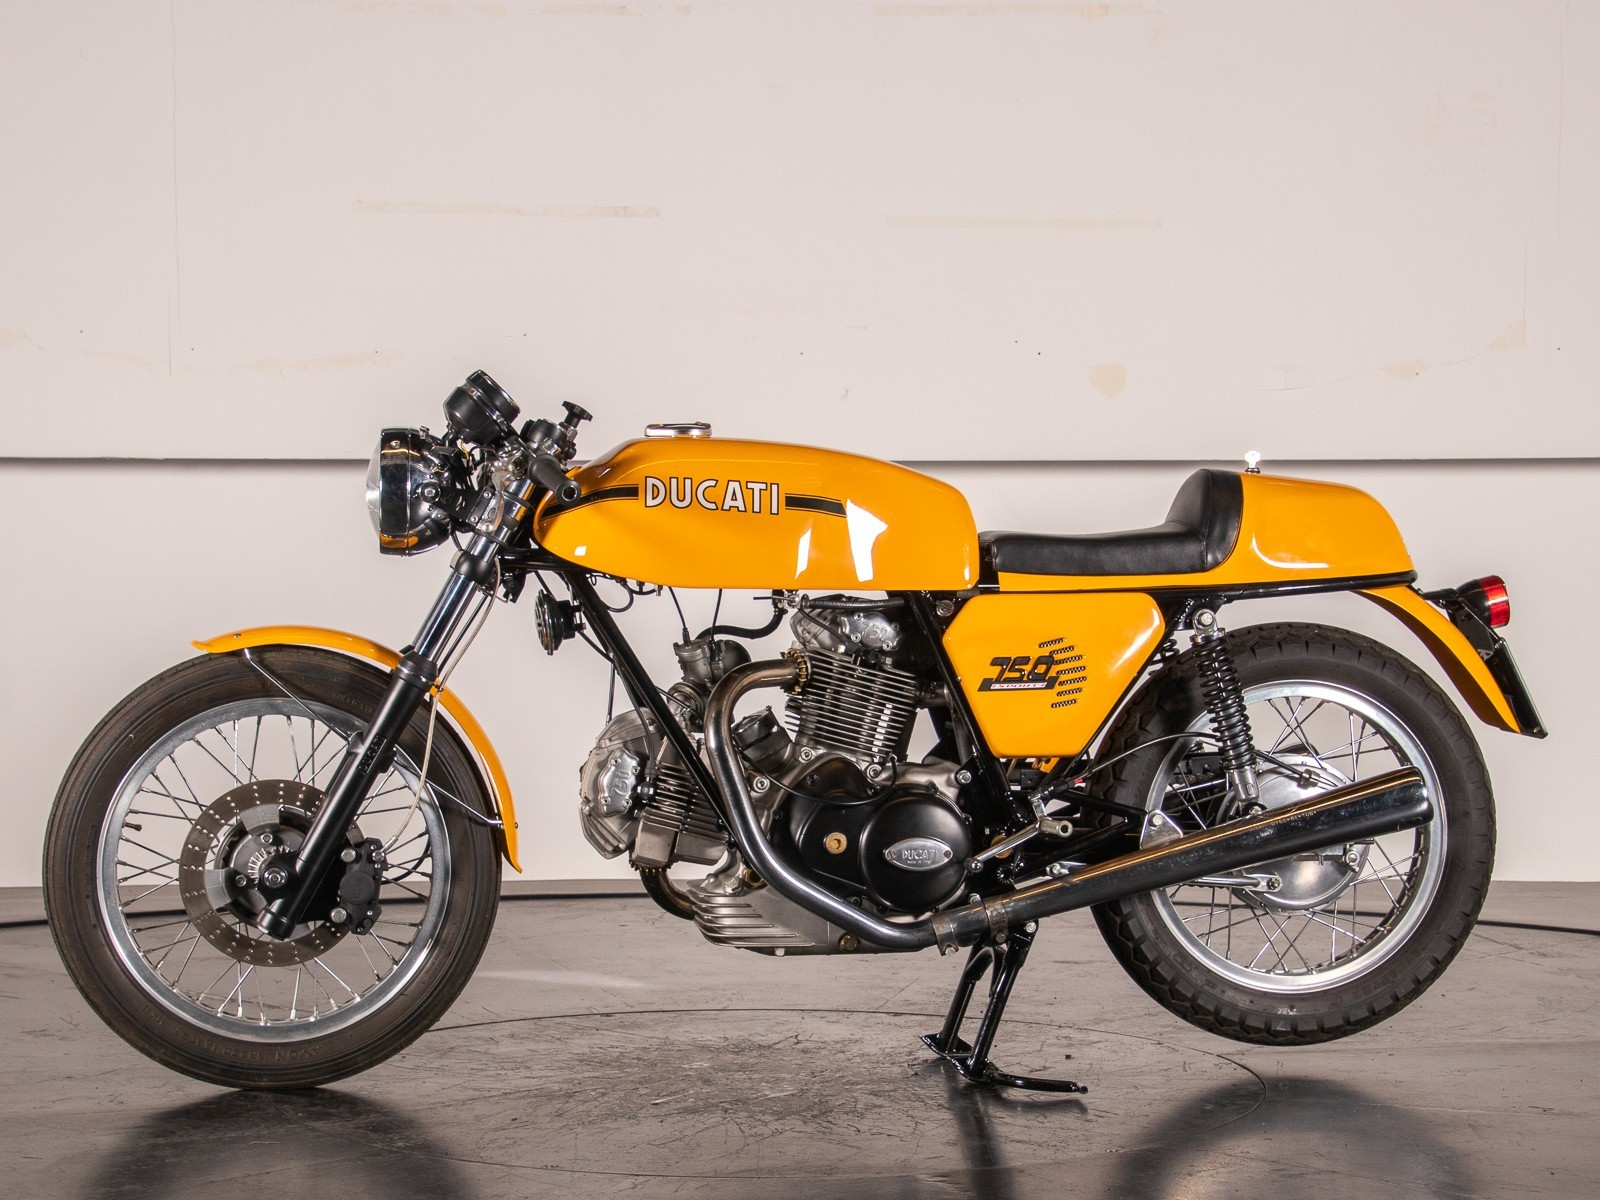 Vintage (used) motorcycles' values: Ducati 750 S approx. $62,876 for sale